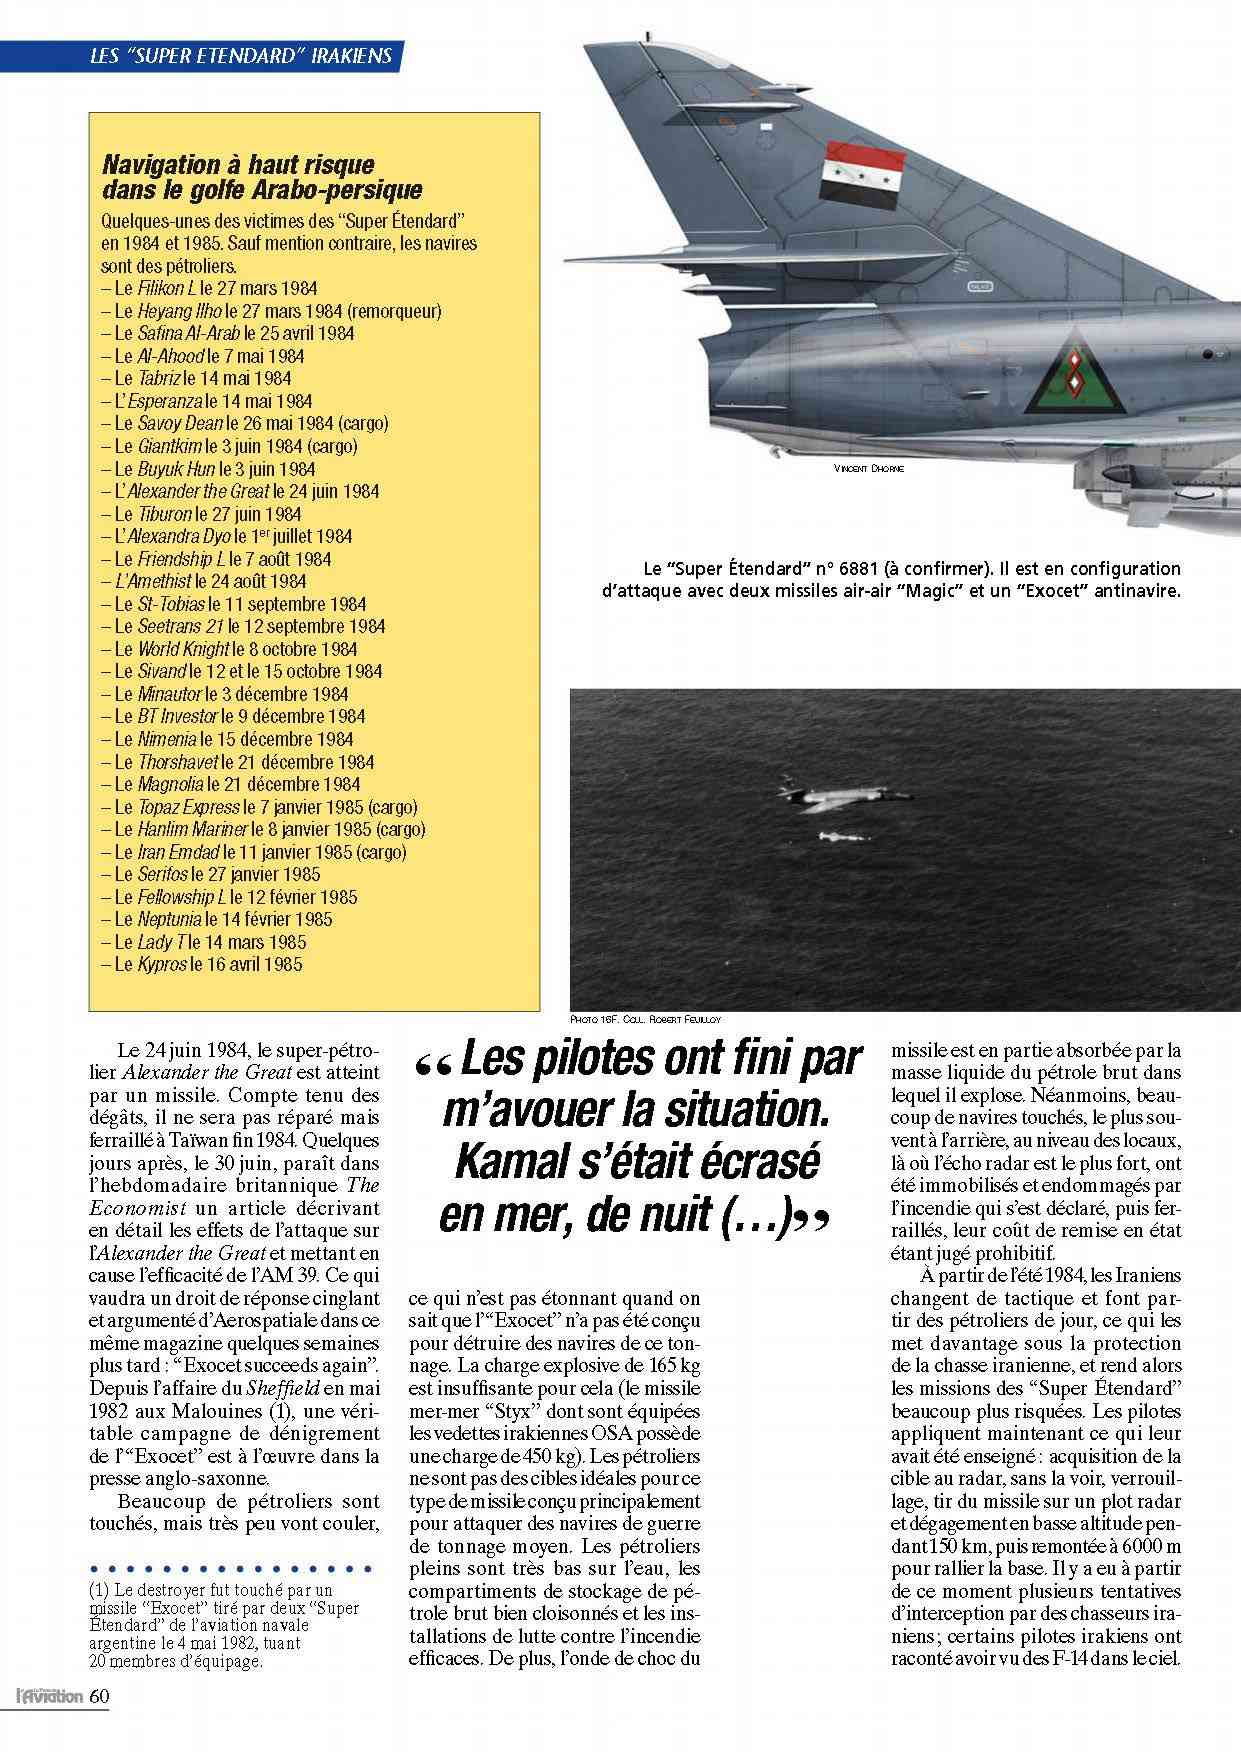 Guerre Iran-Irak - Page 3 S3010